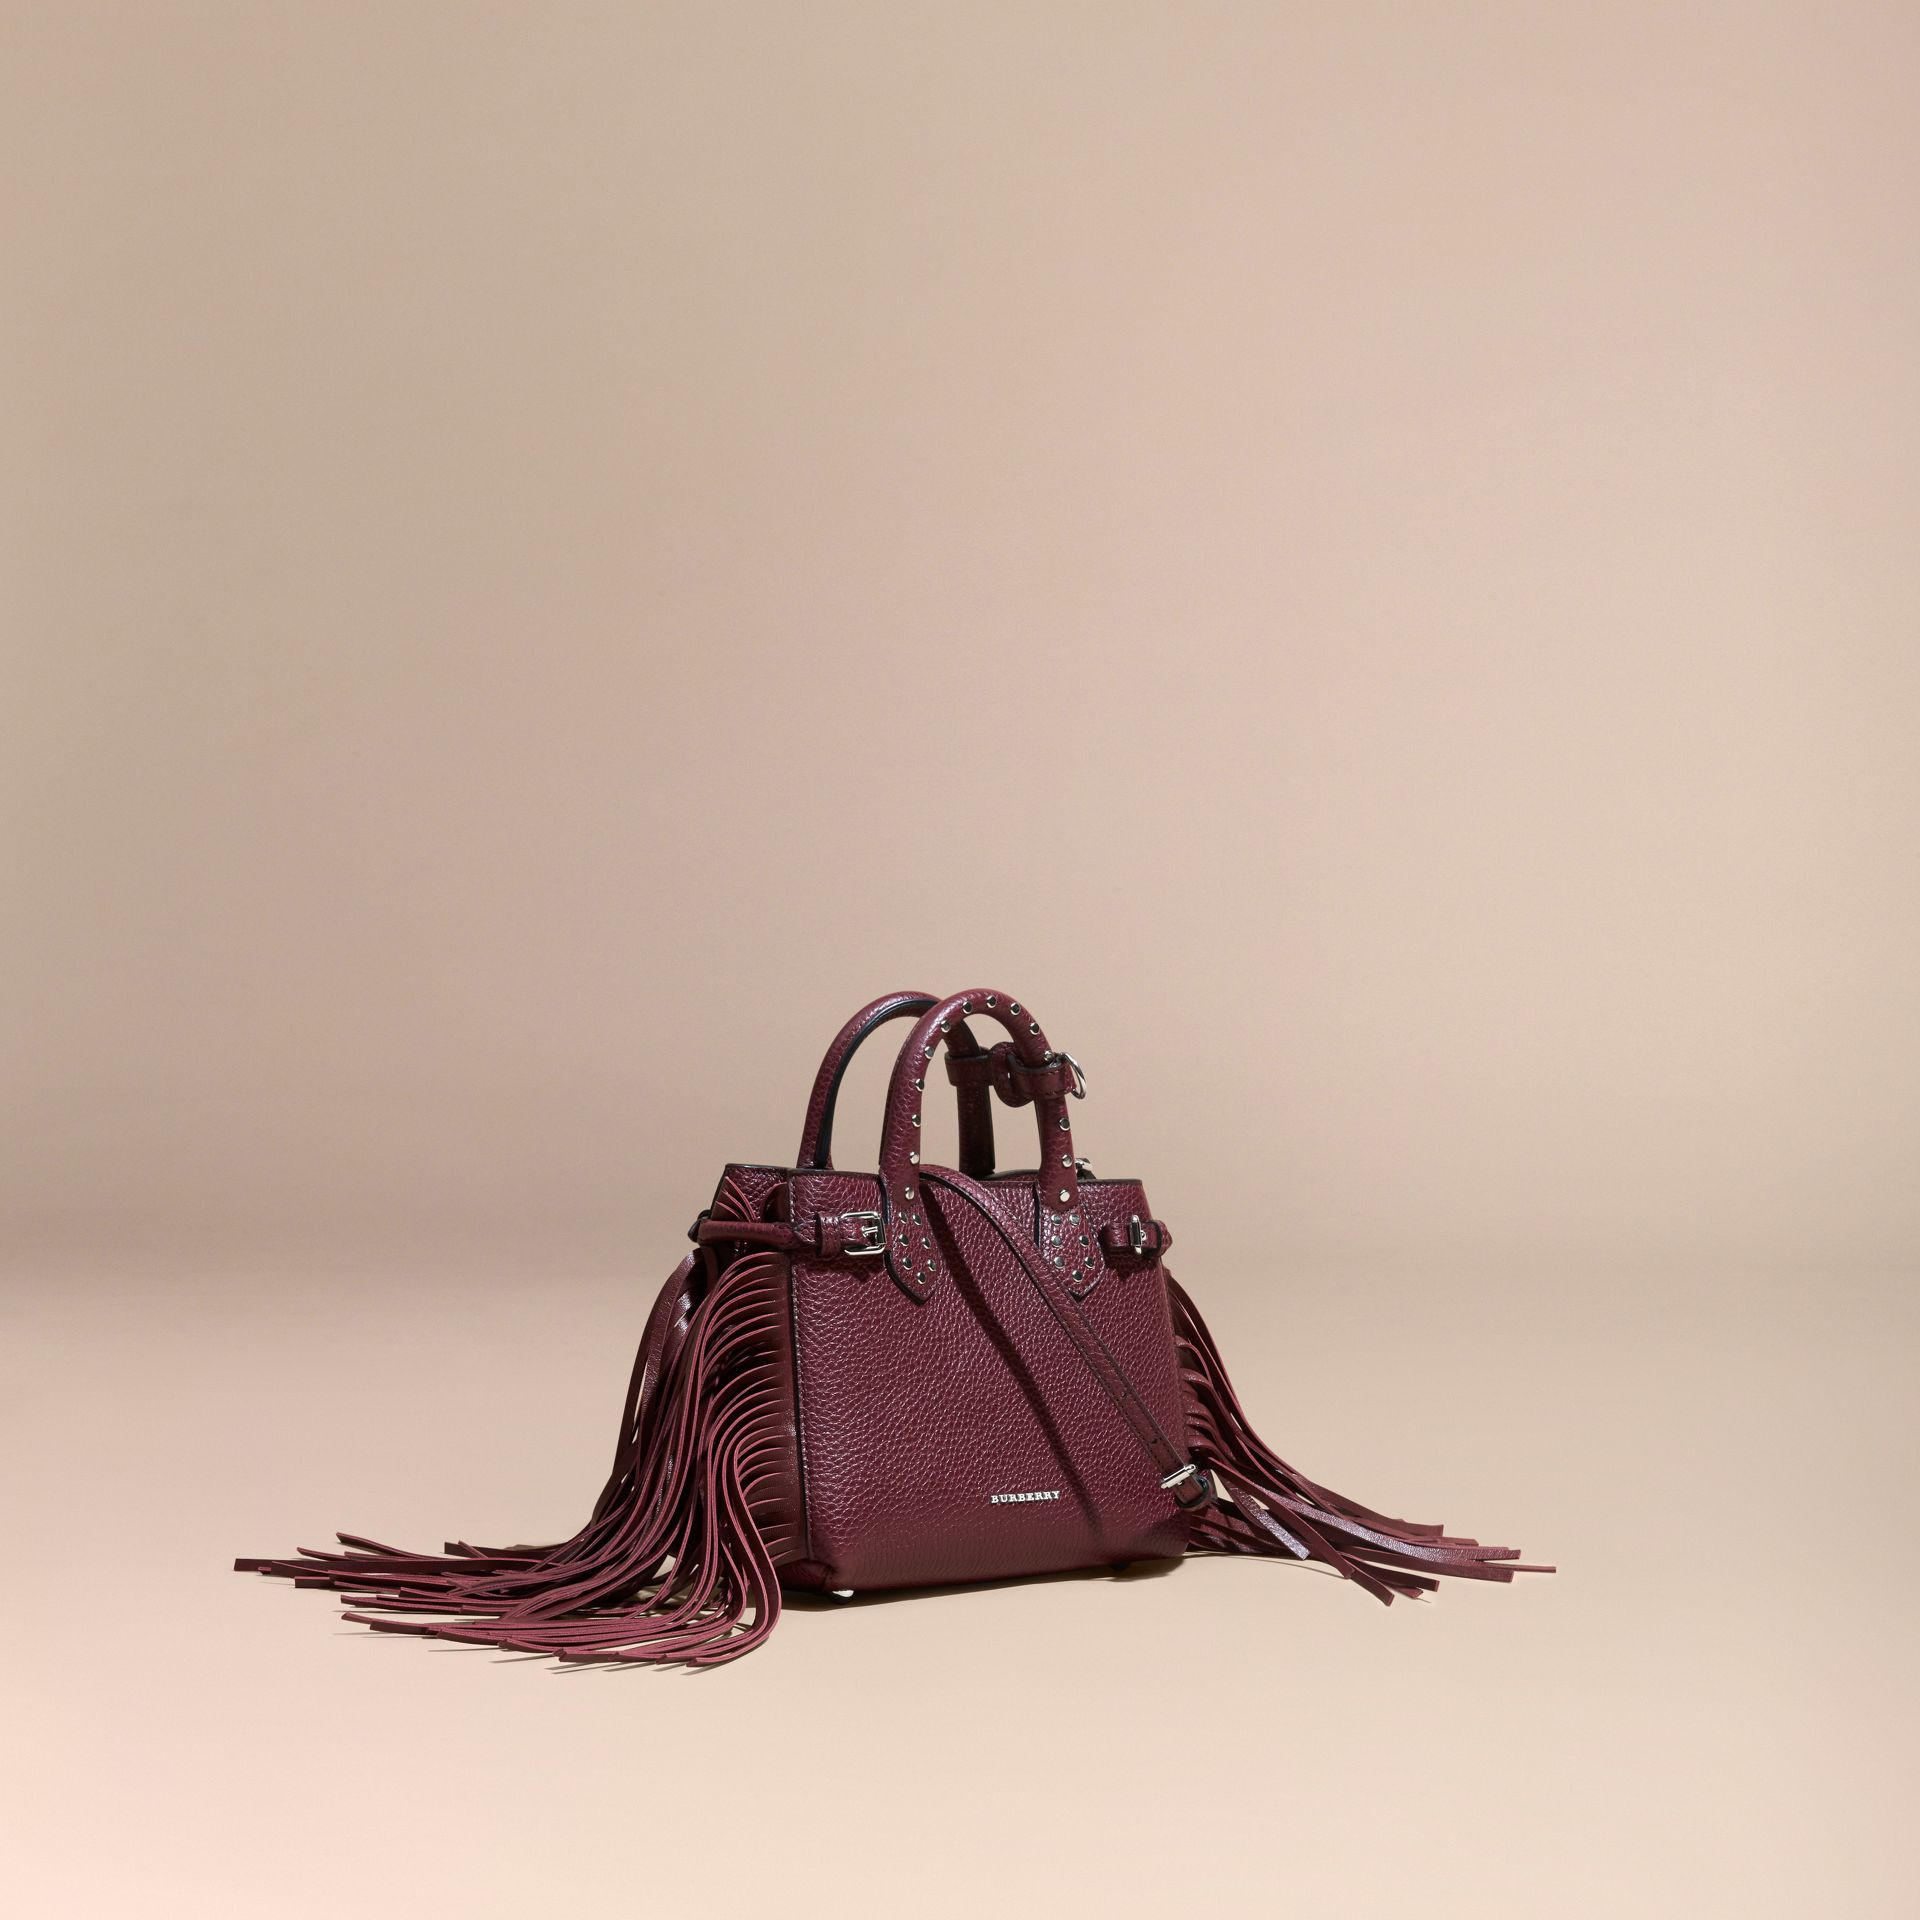 Dark damson The Baby Banner in Fringed Grainy Leather Dark Damson - gallery image 1